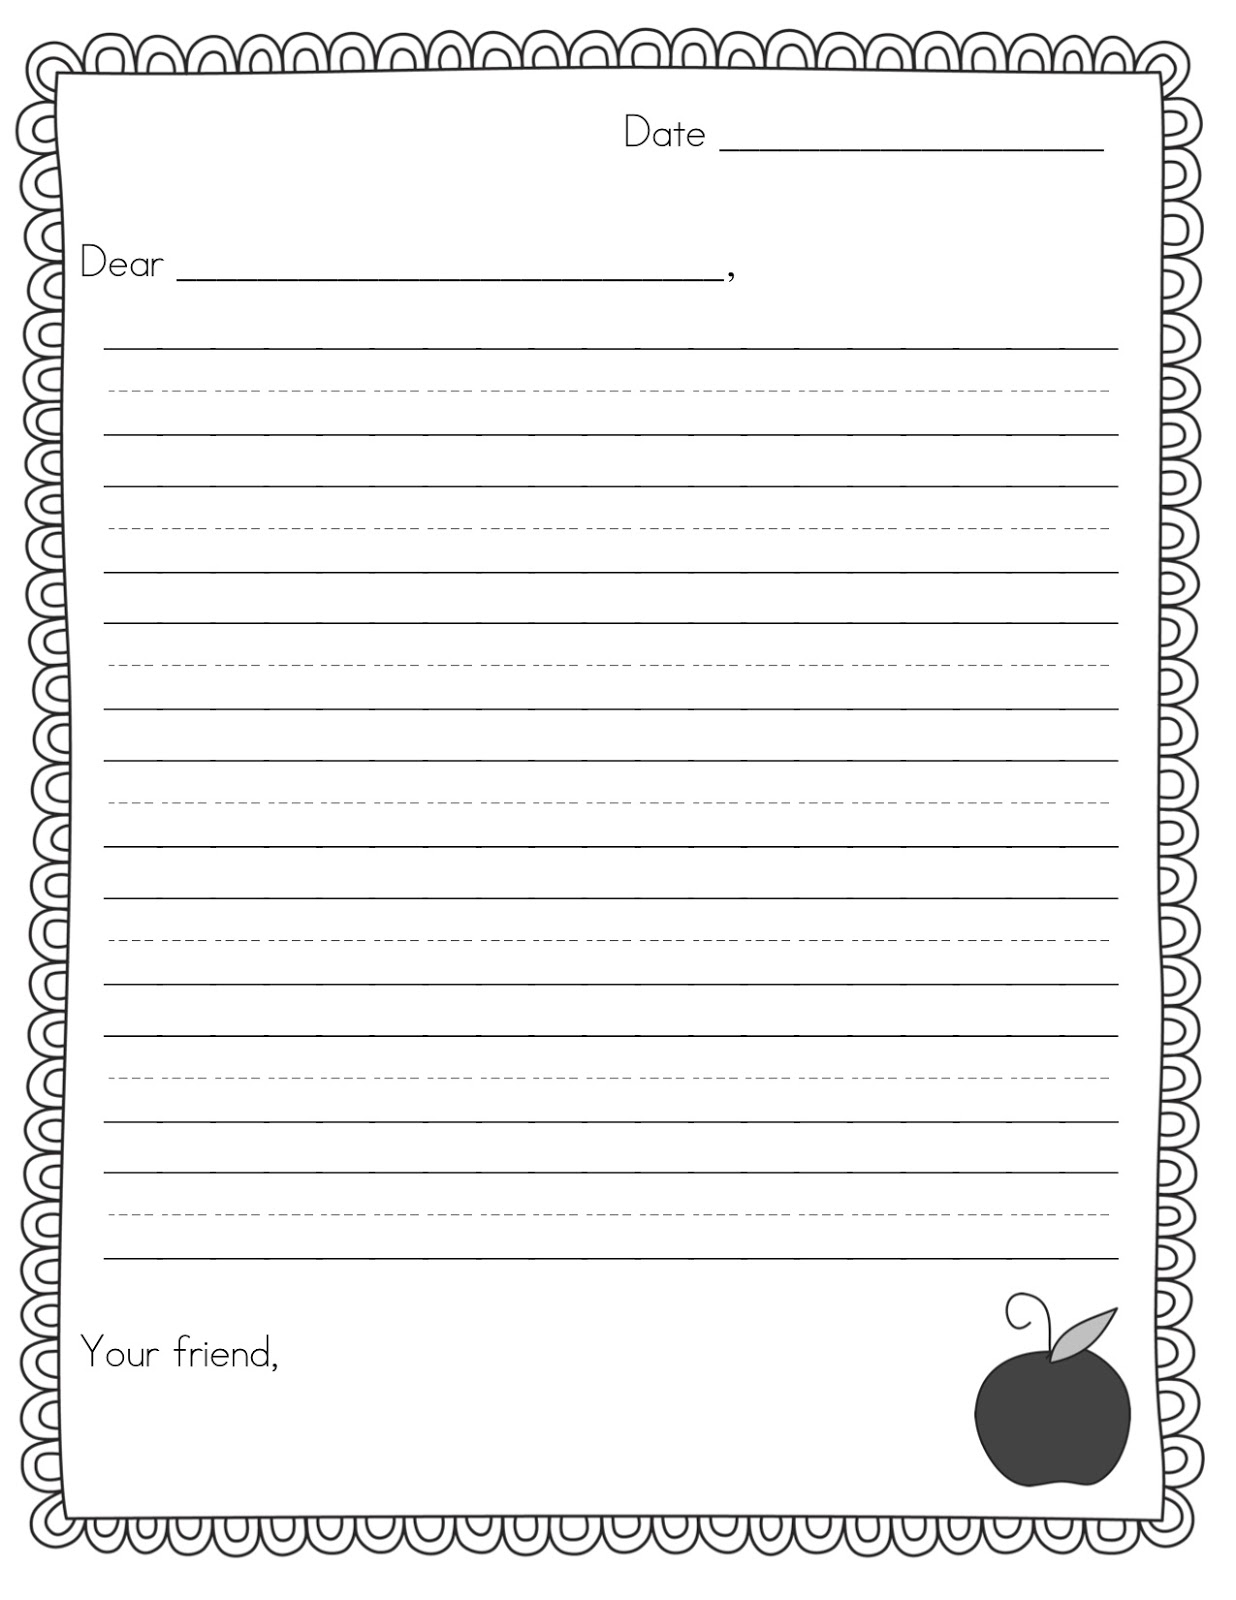 Pen Pal News Friendly Letter Freebie Teacher Idea Factory